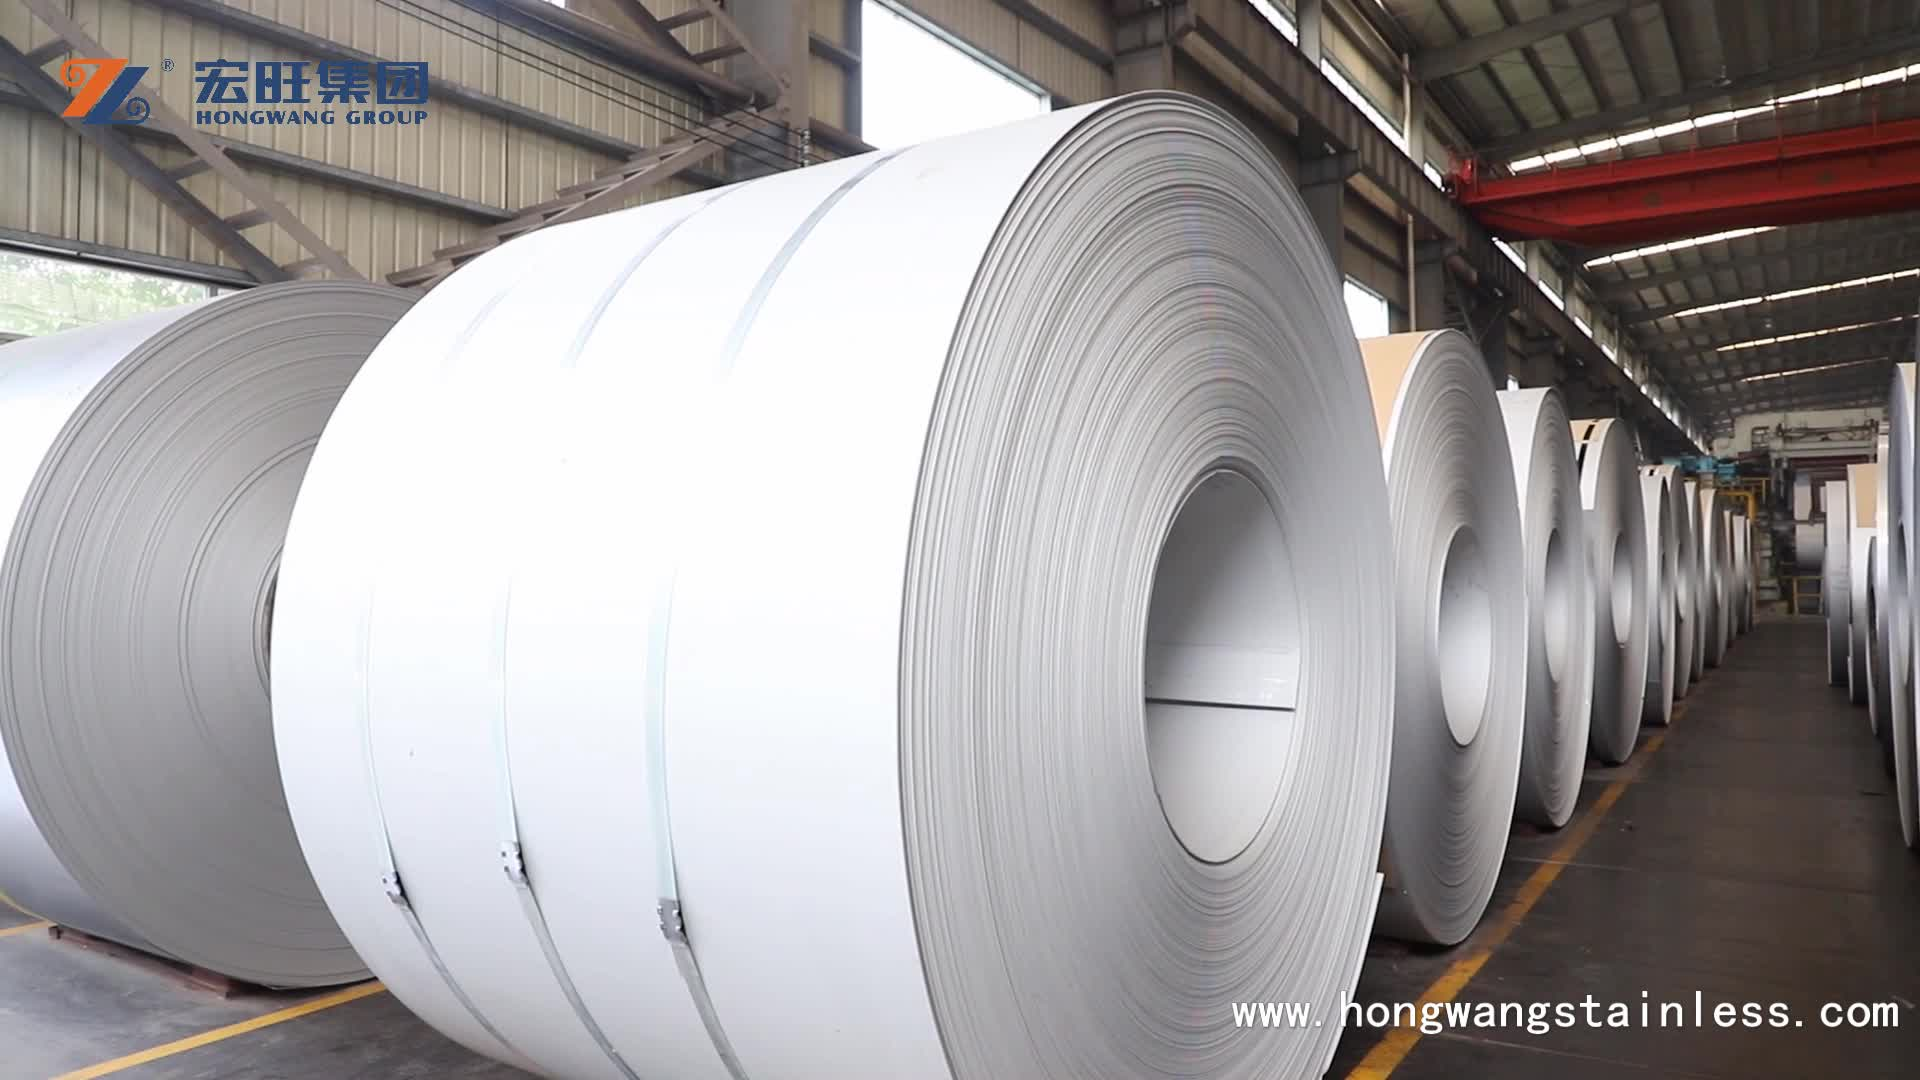 Custom size grade 201 202 304 304L 316 316L 410 420 430 hot rolled stainless steel coil price per ton made in hongwang